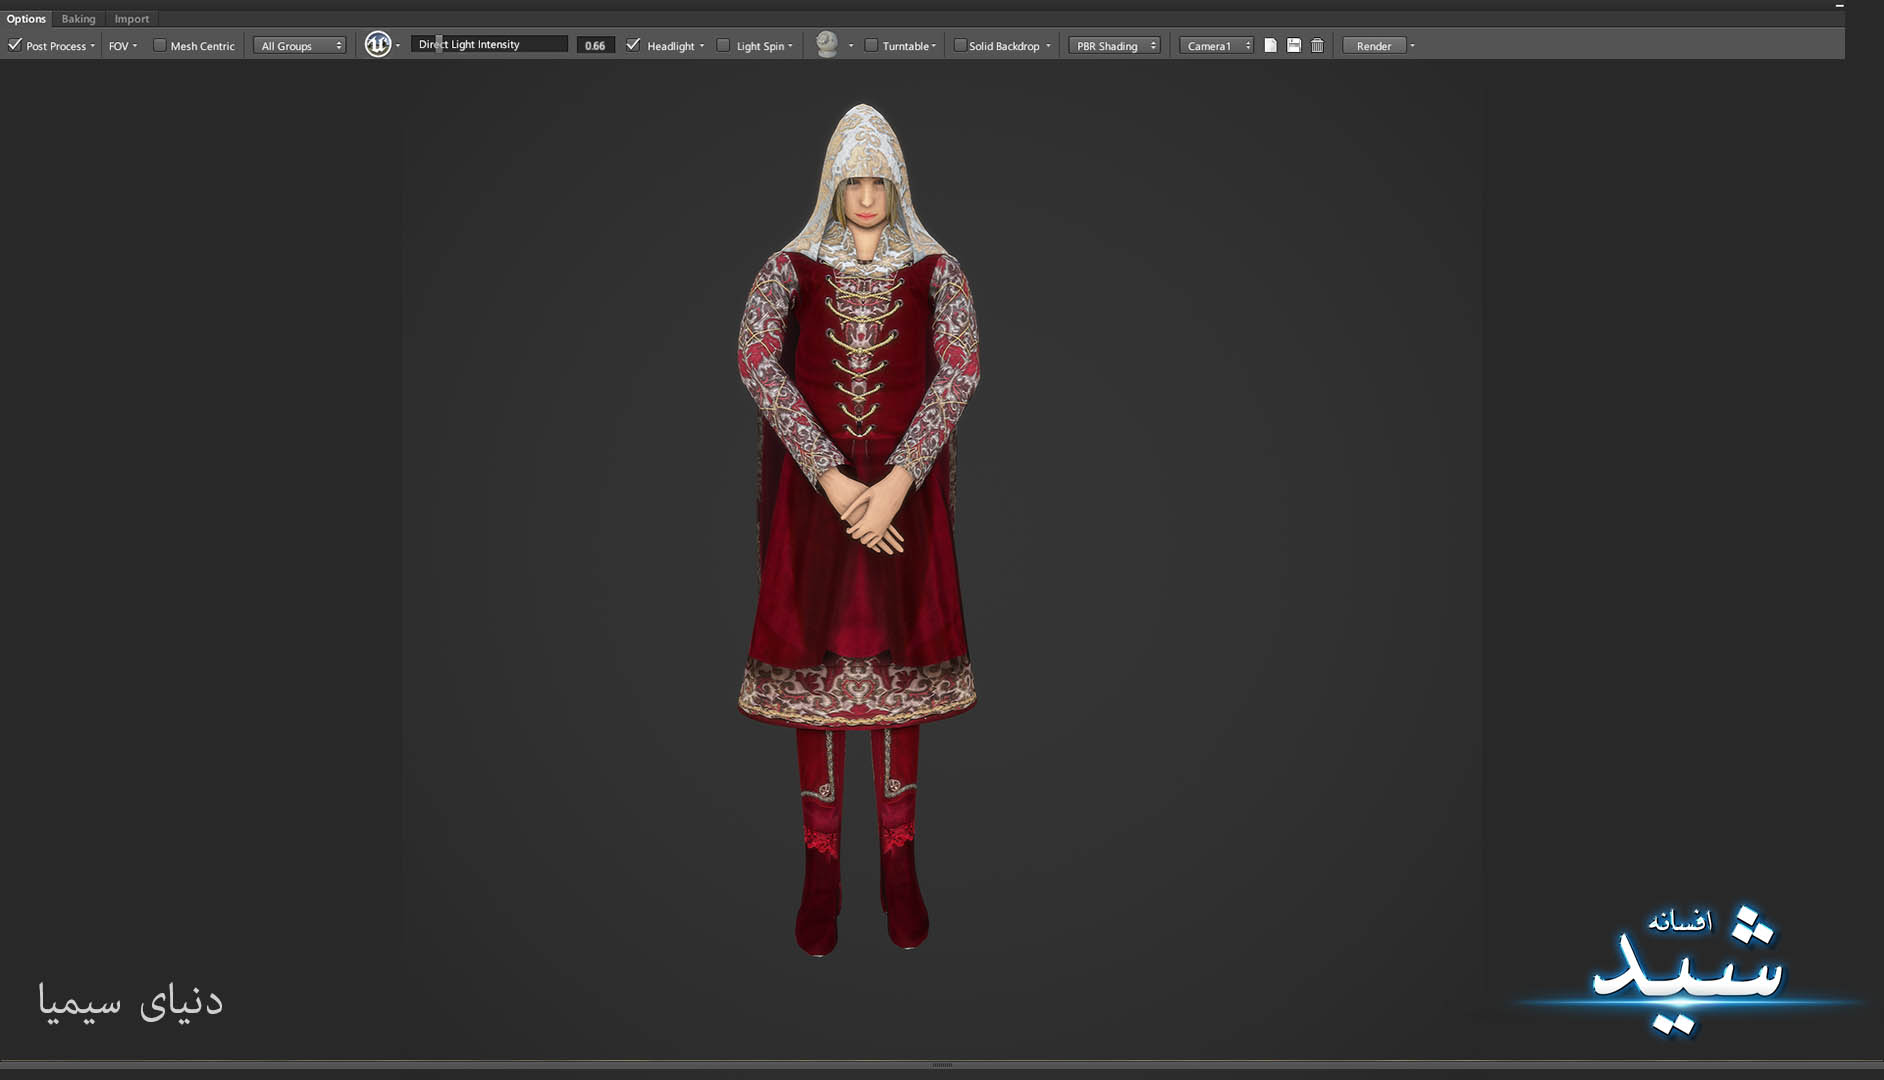 Legend of the light_Healer Character Texturing_Hadi Beheshti CG Artist Game Designer-3